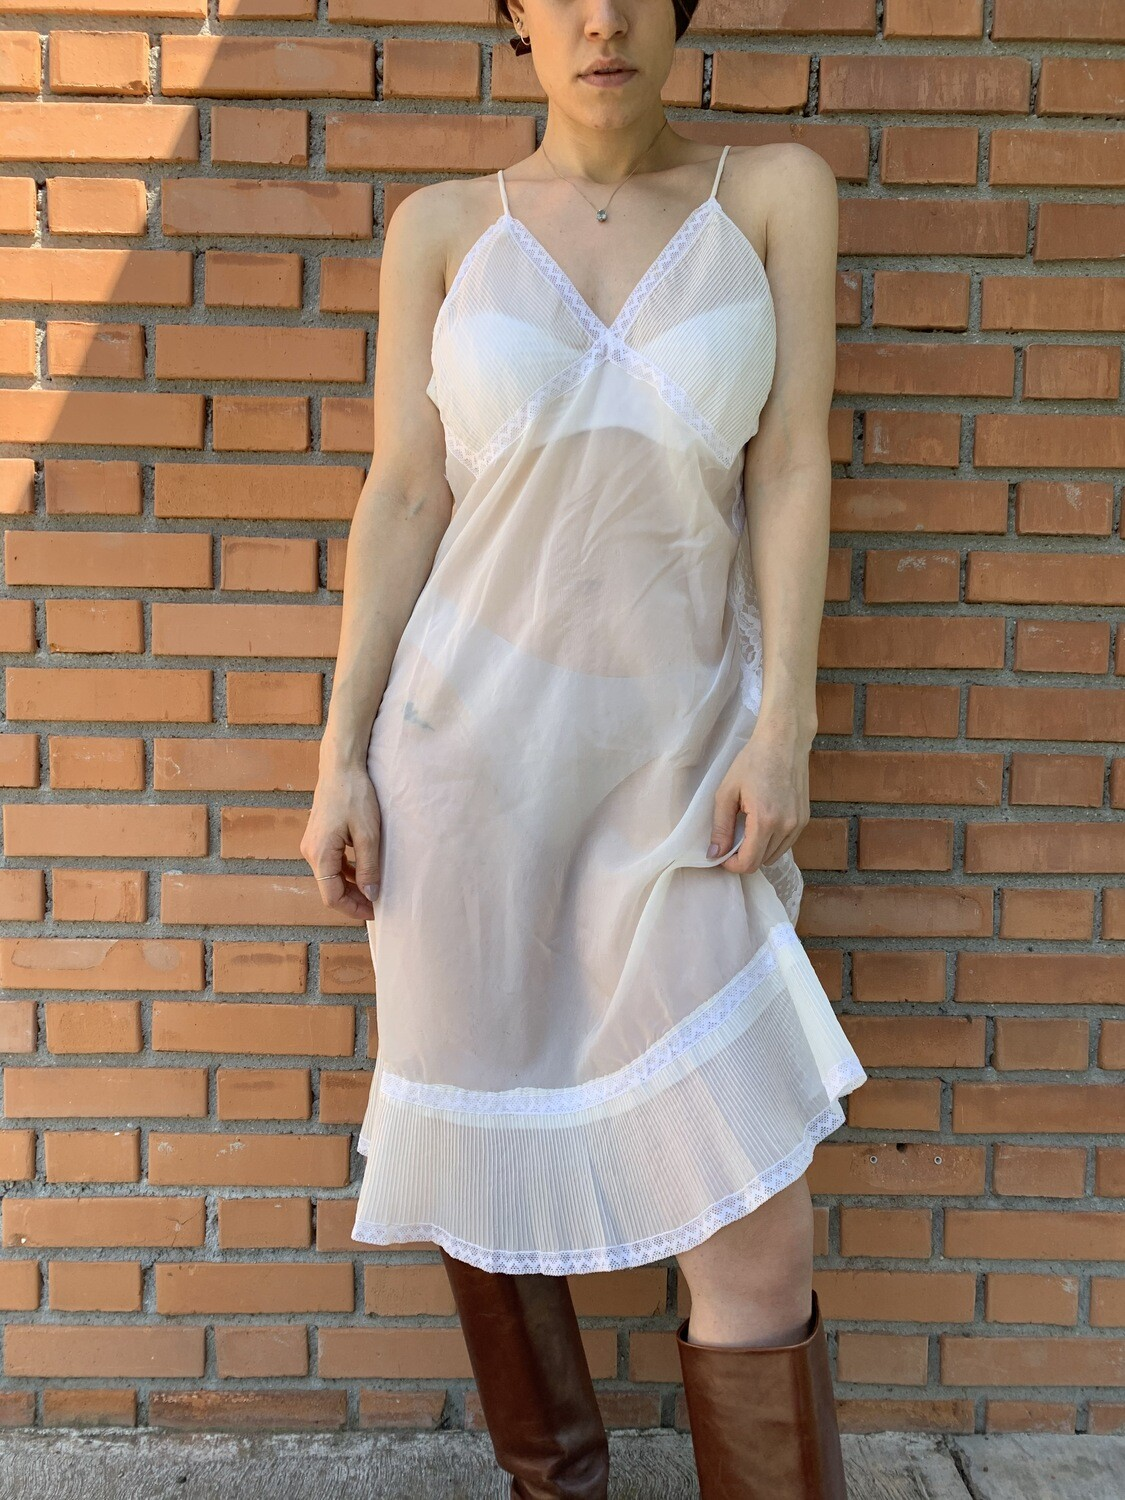 Vintage Sheer Nigthgown Slip Dress Size Large